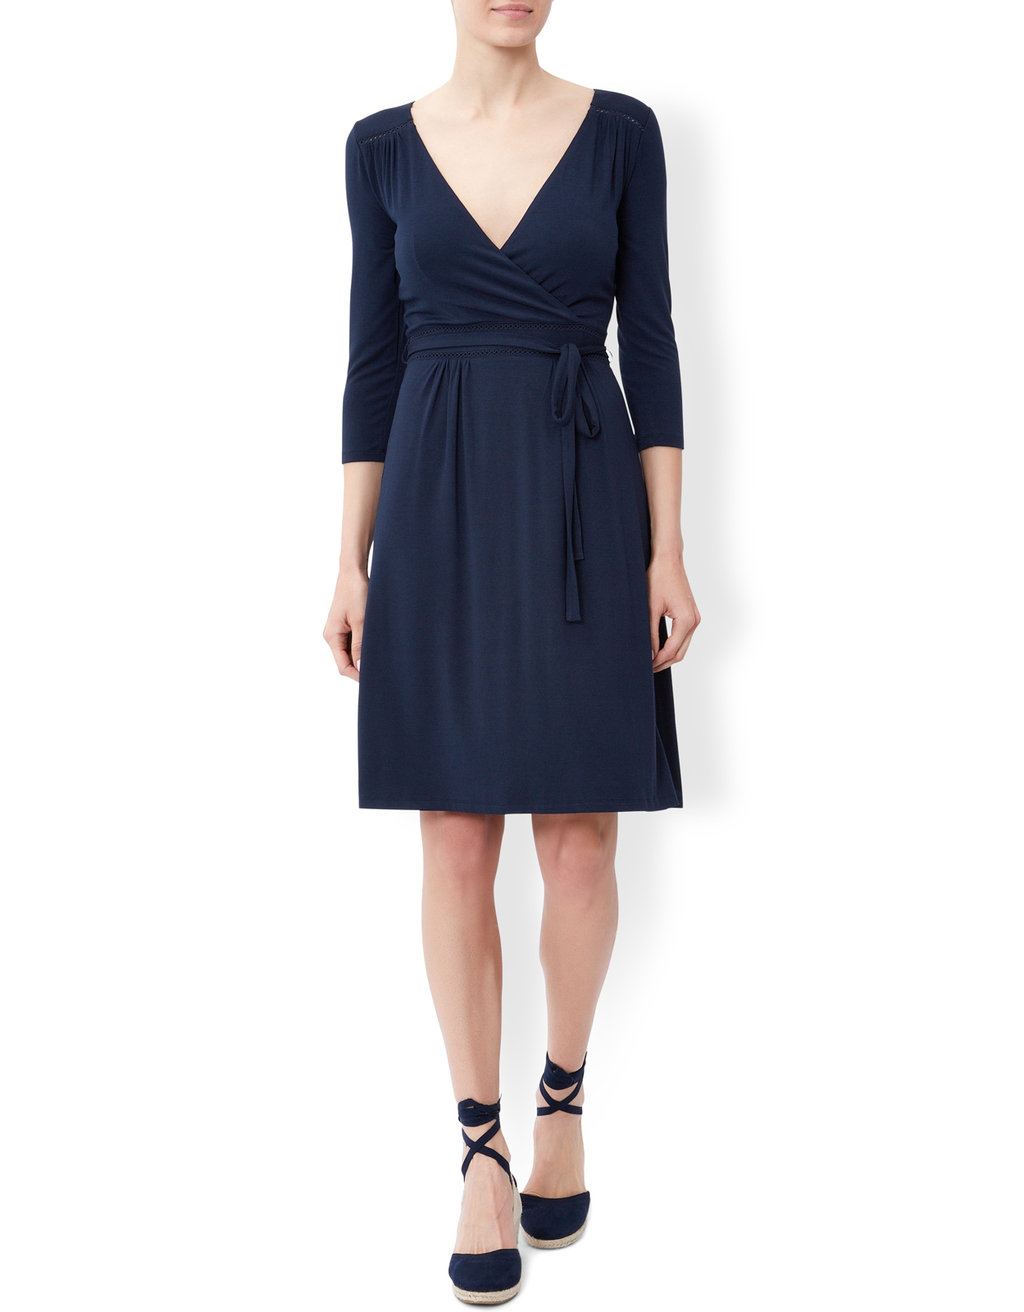 Victoria Plain Dress - style: faux wrap/wrap; neckline: low v-neck; pattern: plain; waist detail: belted waist/tie at waist/drawstring; predominant colour: navy; occasions: evening; length: on the knee; fit: soft a-line; fibres: viscose/rayon - 100%; sleeve length: 3/4 length; sleeve style: standard; pattern type: fabric; pattern size: standard; texture group: jersey - stretchy/drapey; season: s/s 2016; wardrobe: event